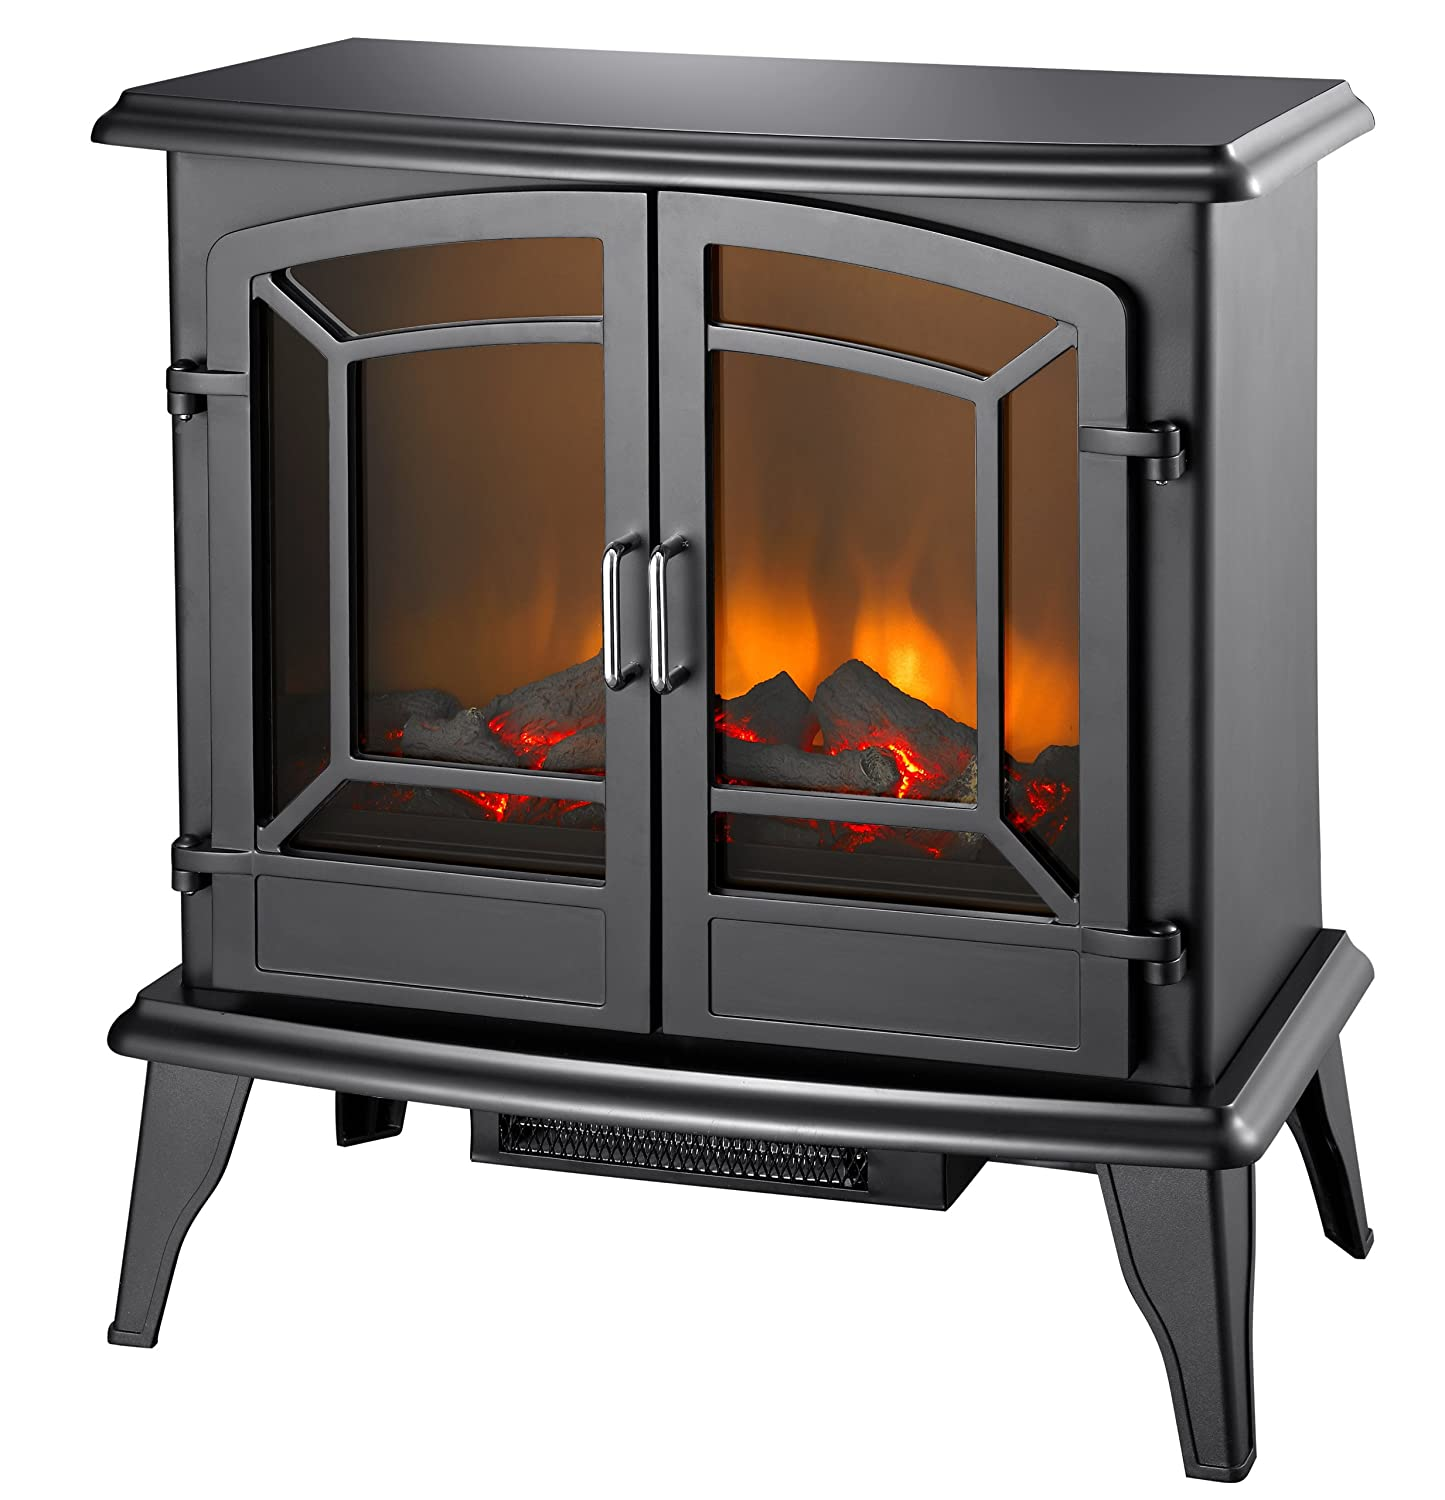 Top 10 Best Compact Electric Stove Heaters 2016 2017 On